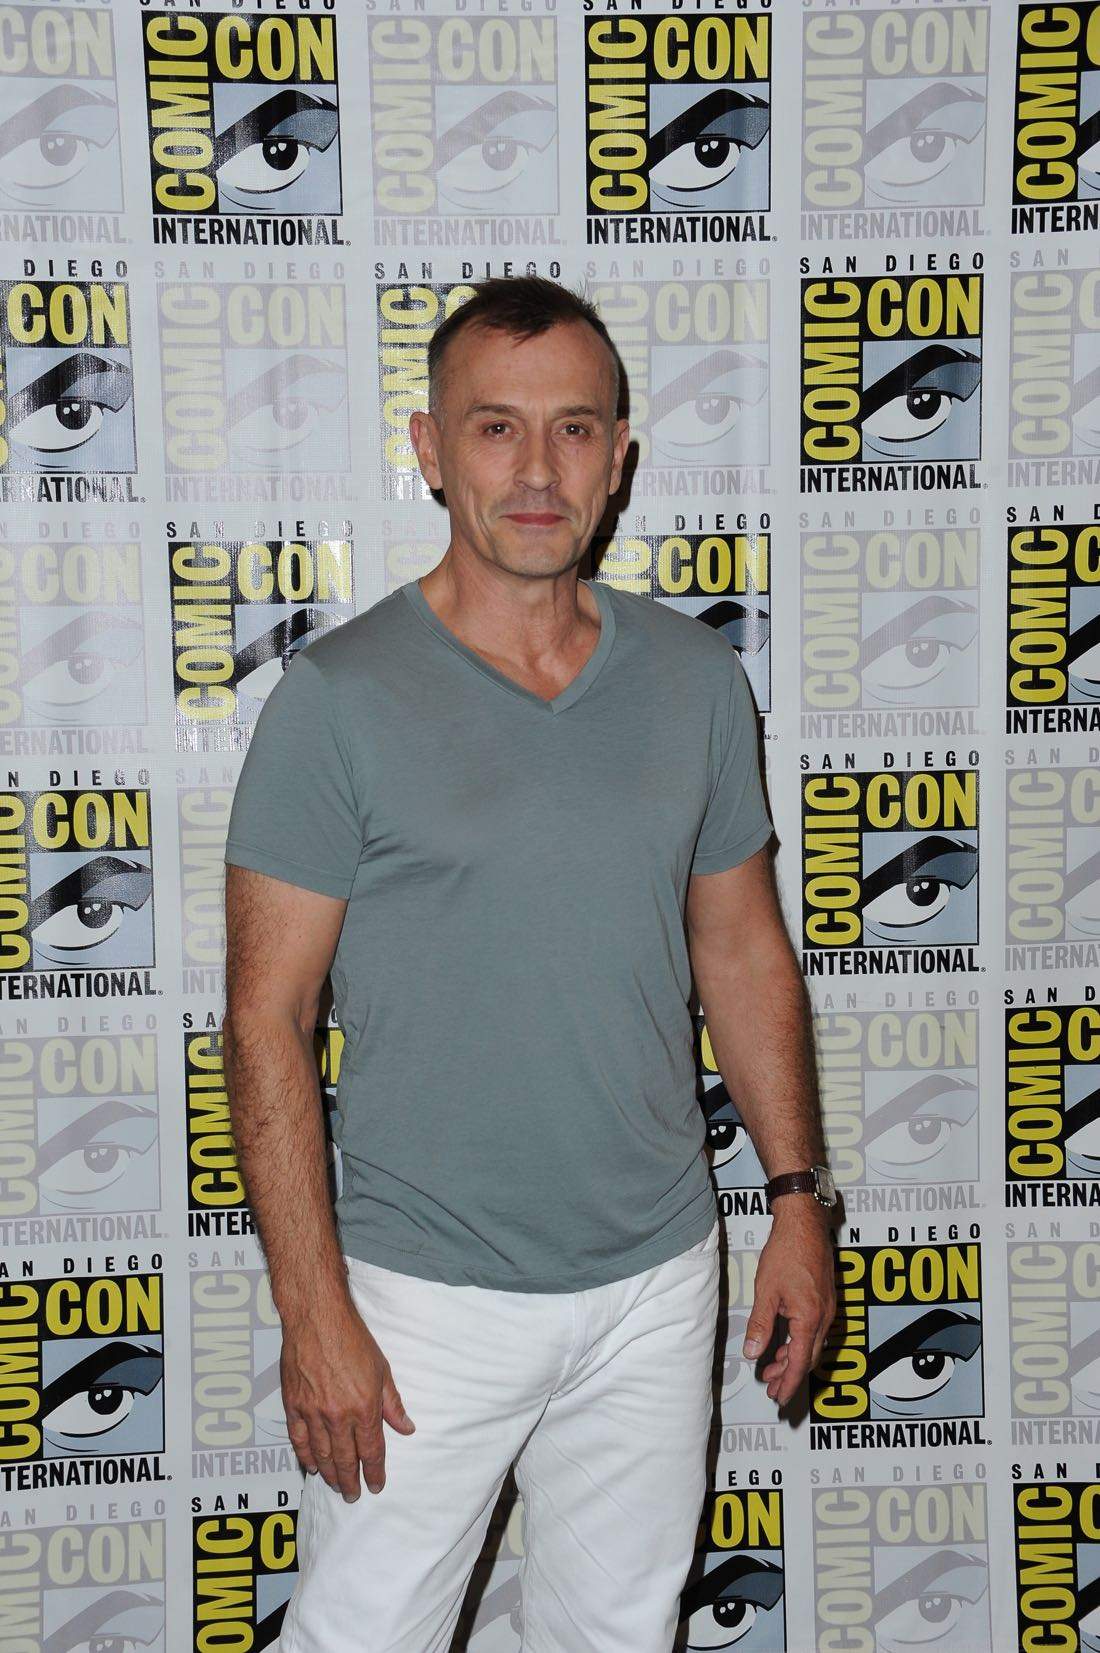 FOX FANFARE AT SAN DIEGO COMIC-CON © 2016: PRISON BREAK cast member Robert Knepper during the PRISON BREAK press room on Sunday, July 24 at the FOX FANFARE AT SAN DIEGO COMIC-CON © 2016. CR: Scott Kirkland/FOX © 2016 FOX BROADCASTING